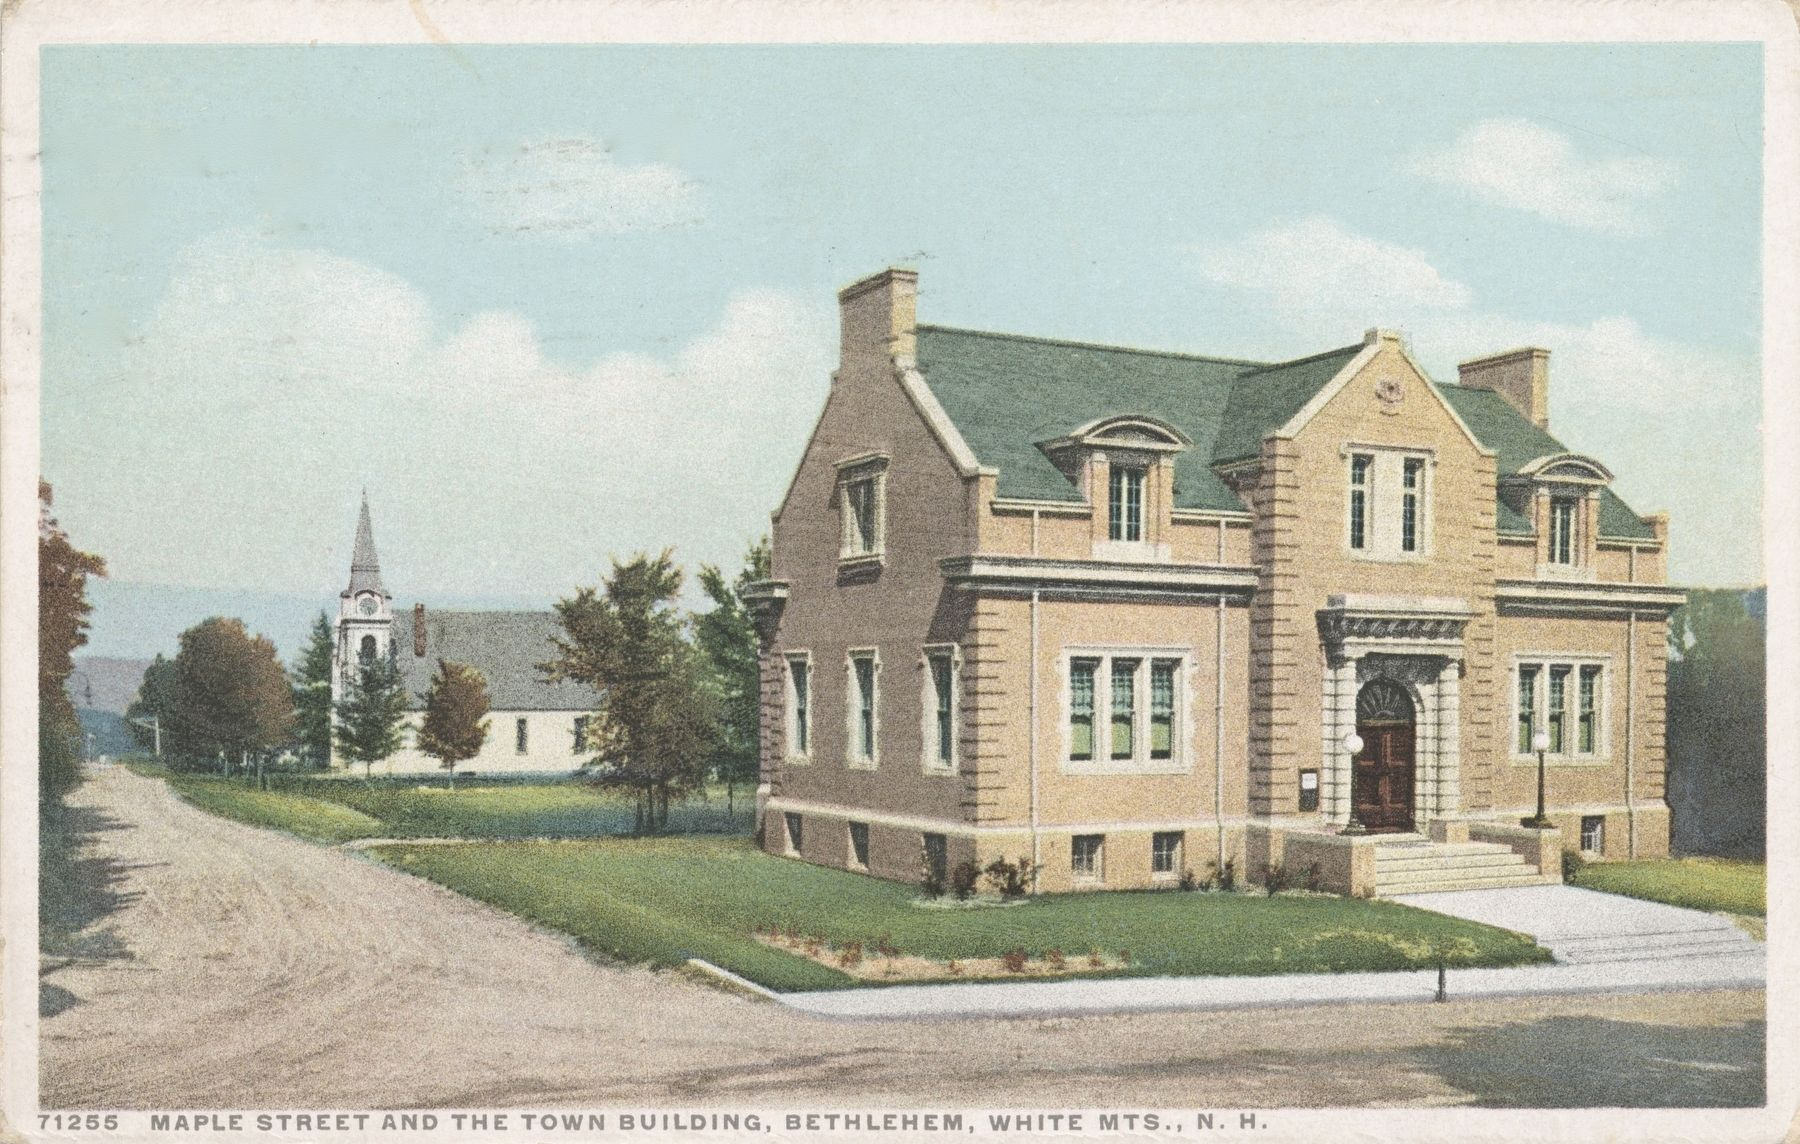 <i>Maple Street and the Town Building, Bethlehem, White Mts., N.H.</i> image. Click for full size.